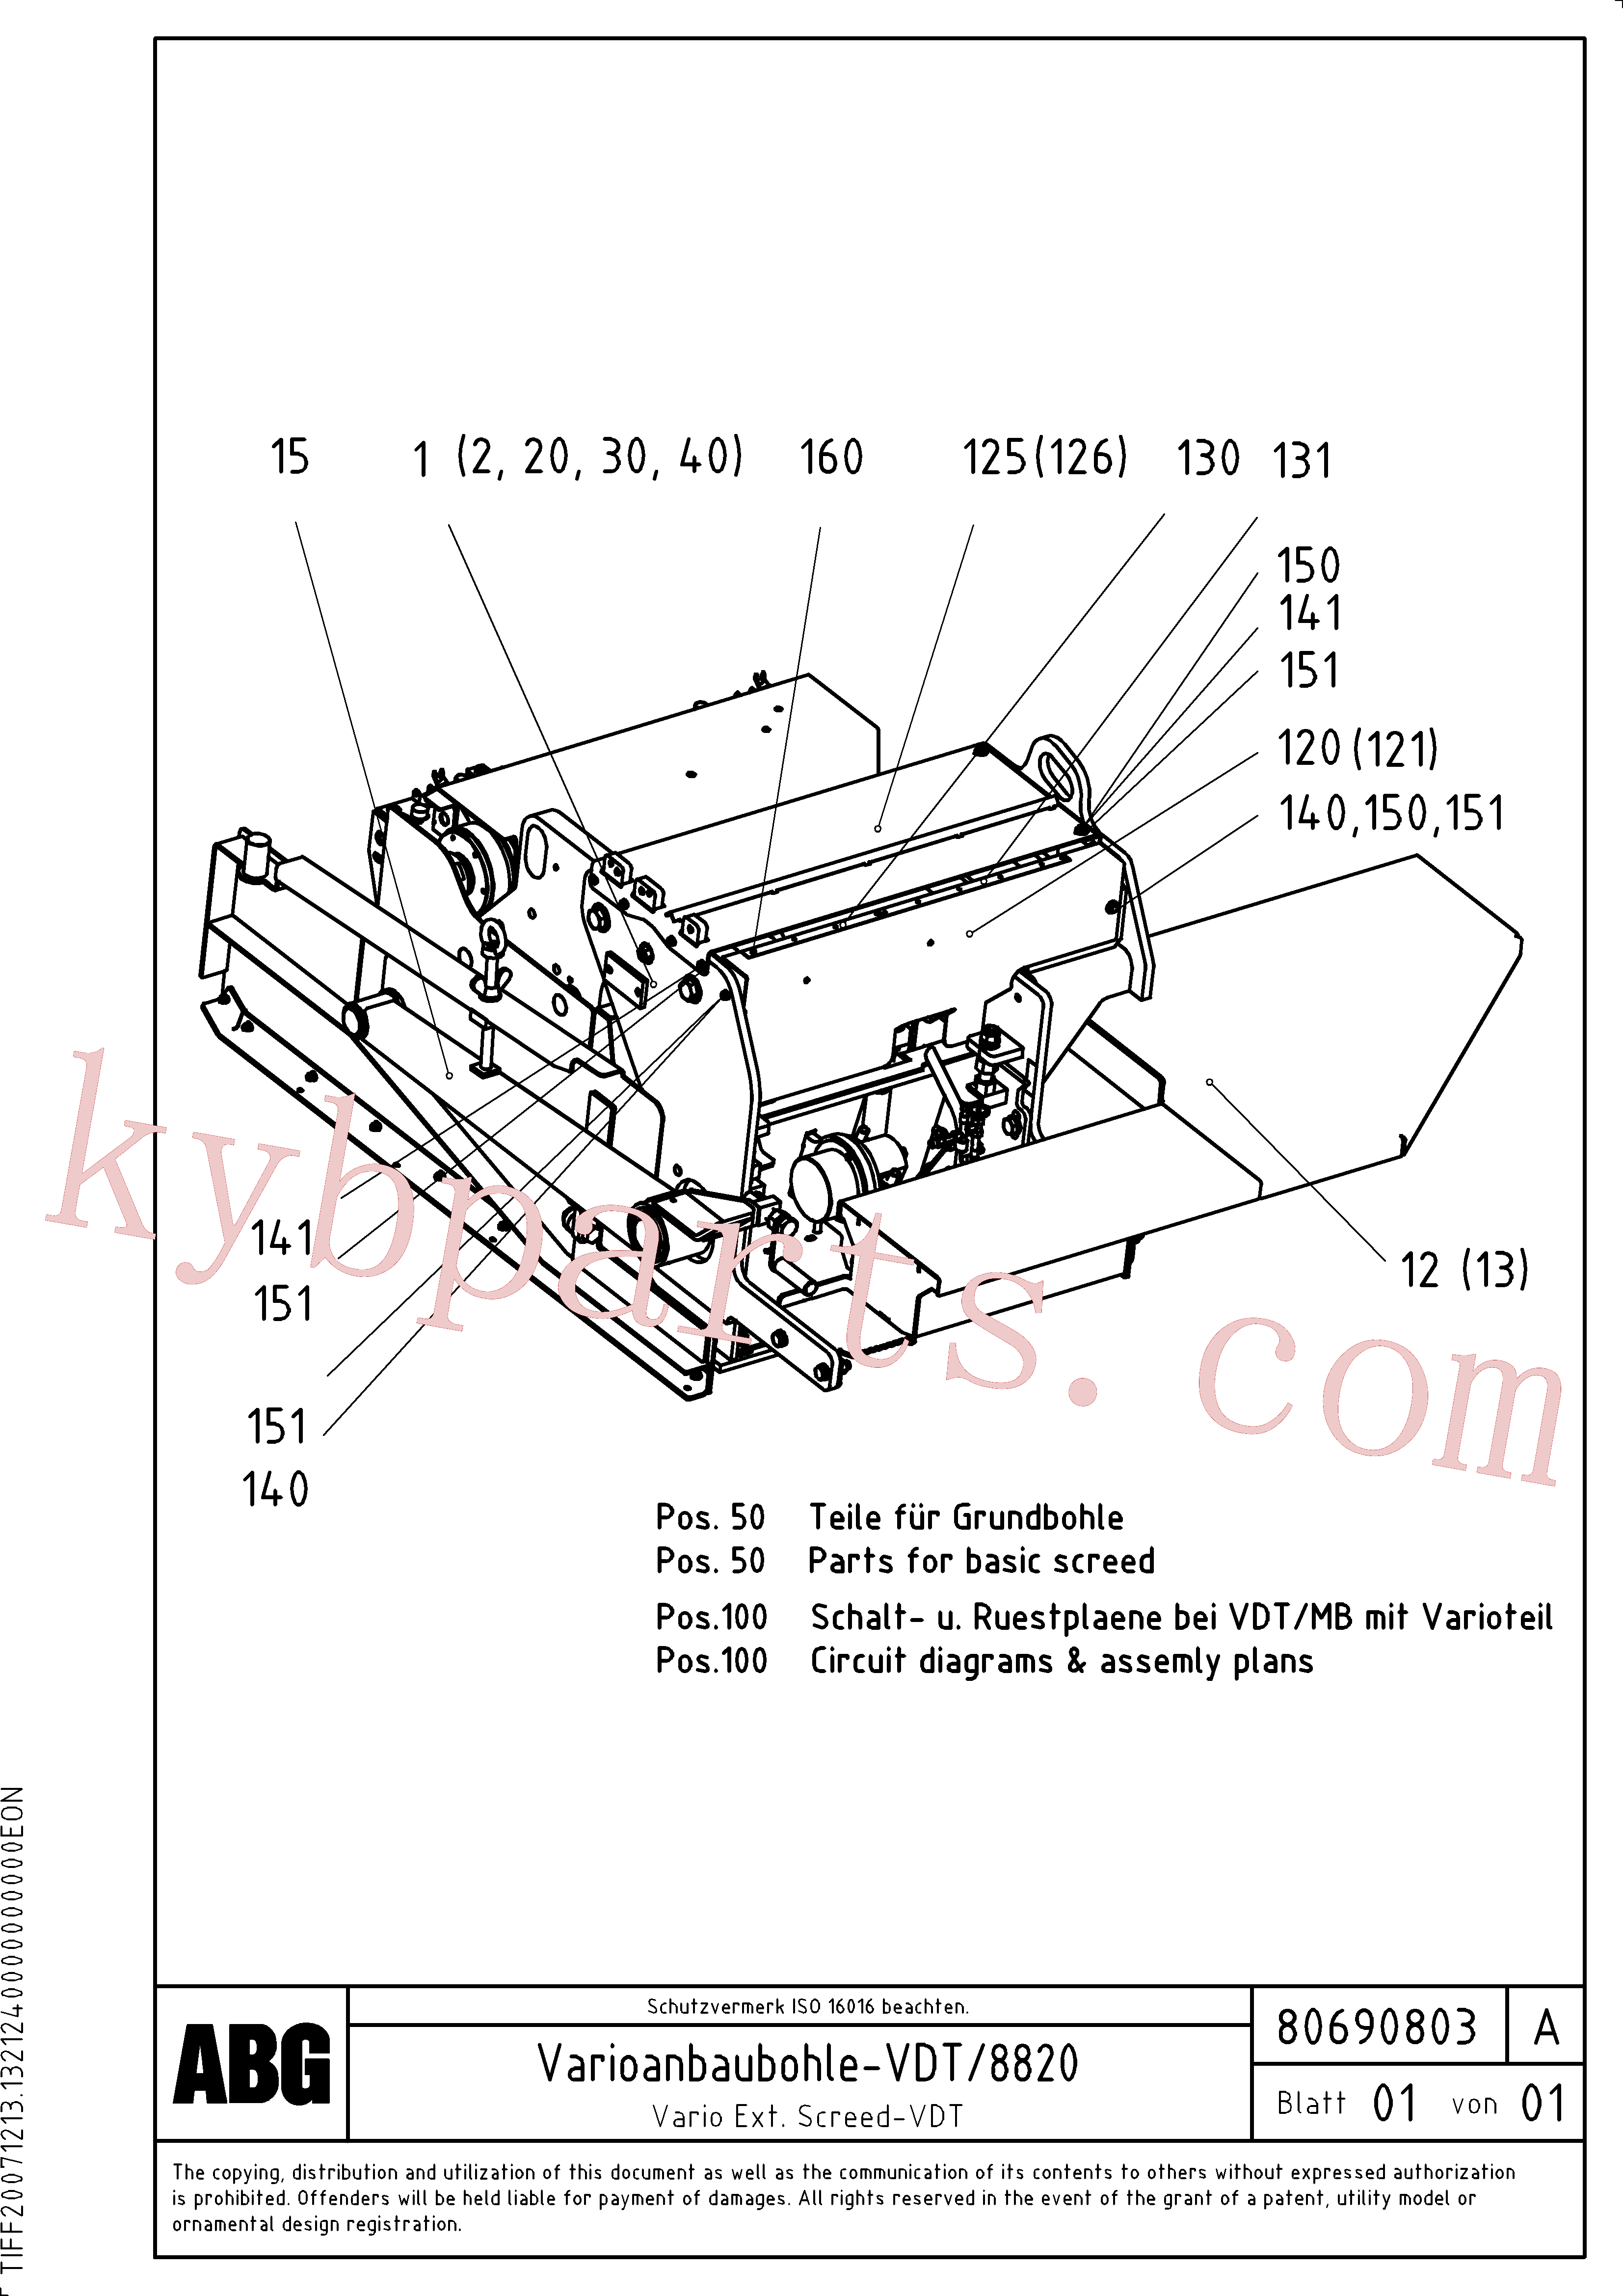 RM80717499 for Volvo Vario extended screed(1047104 assembly)